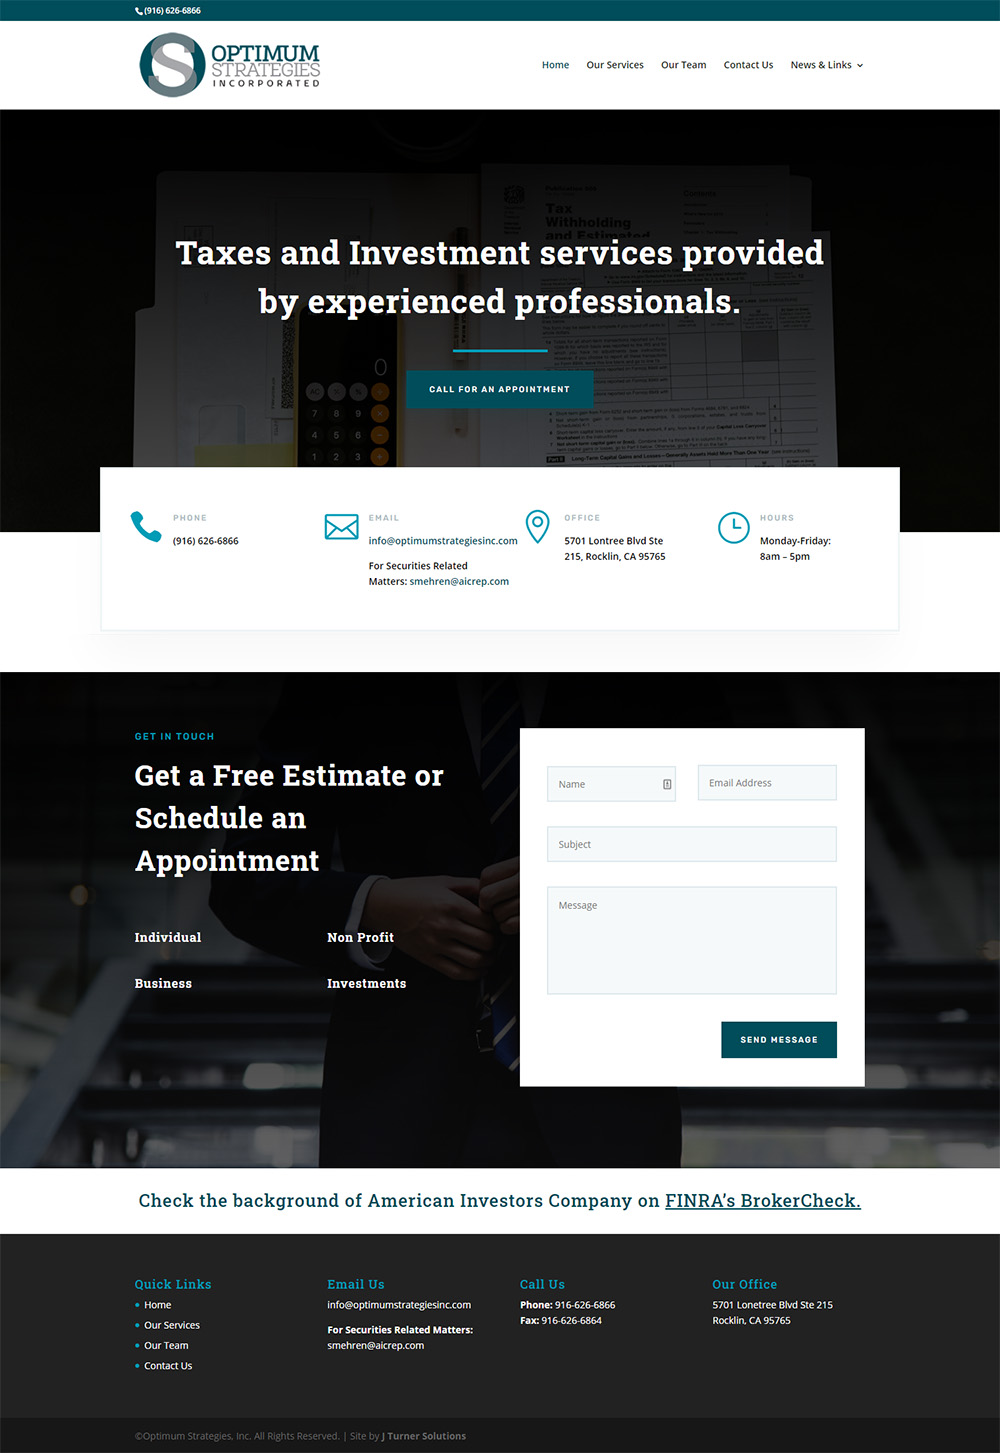 Optimum Strategies Home page after design